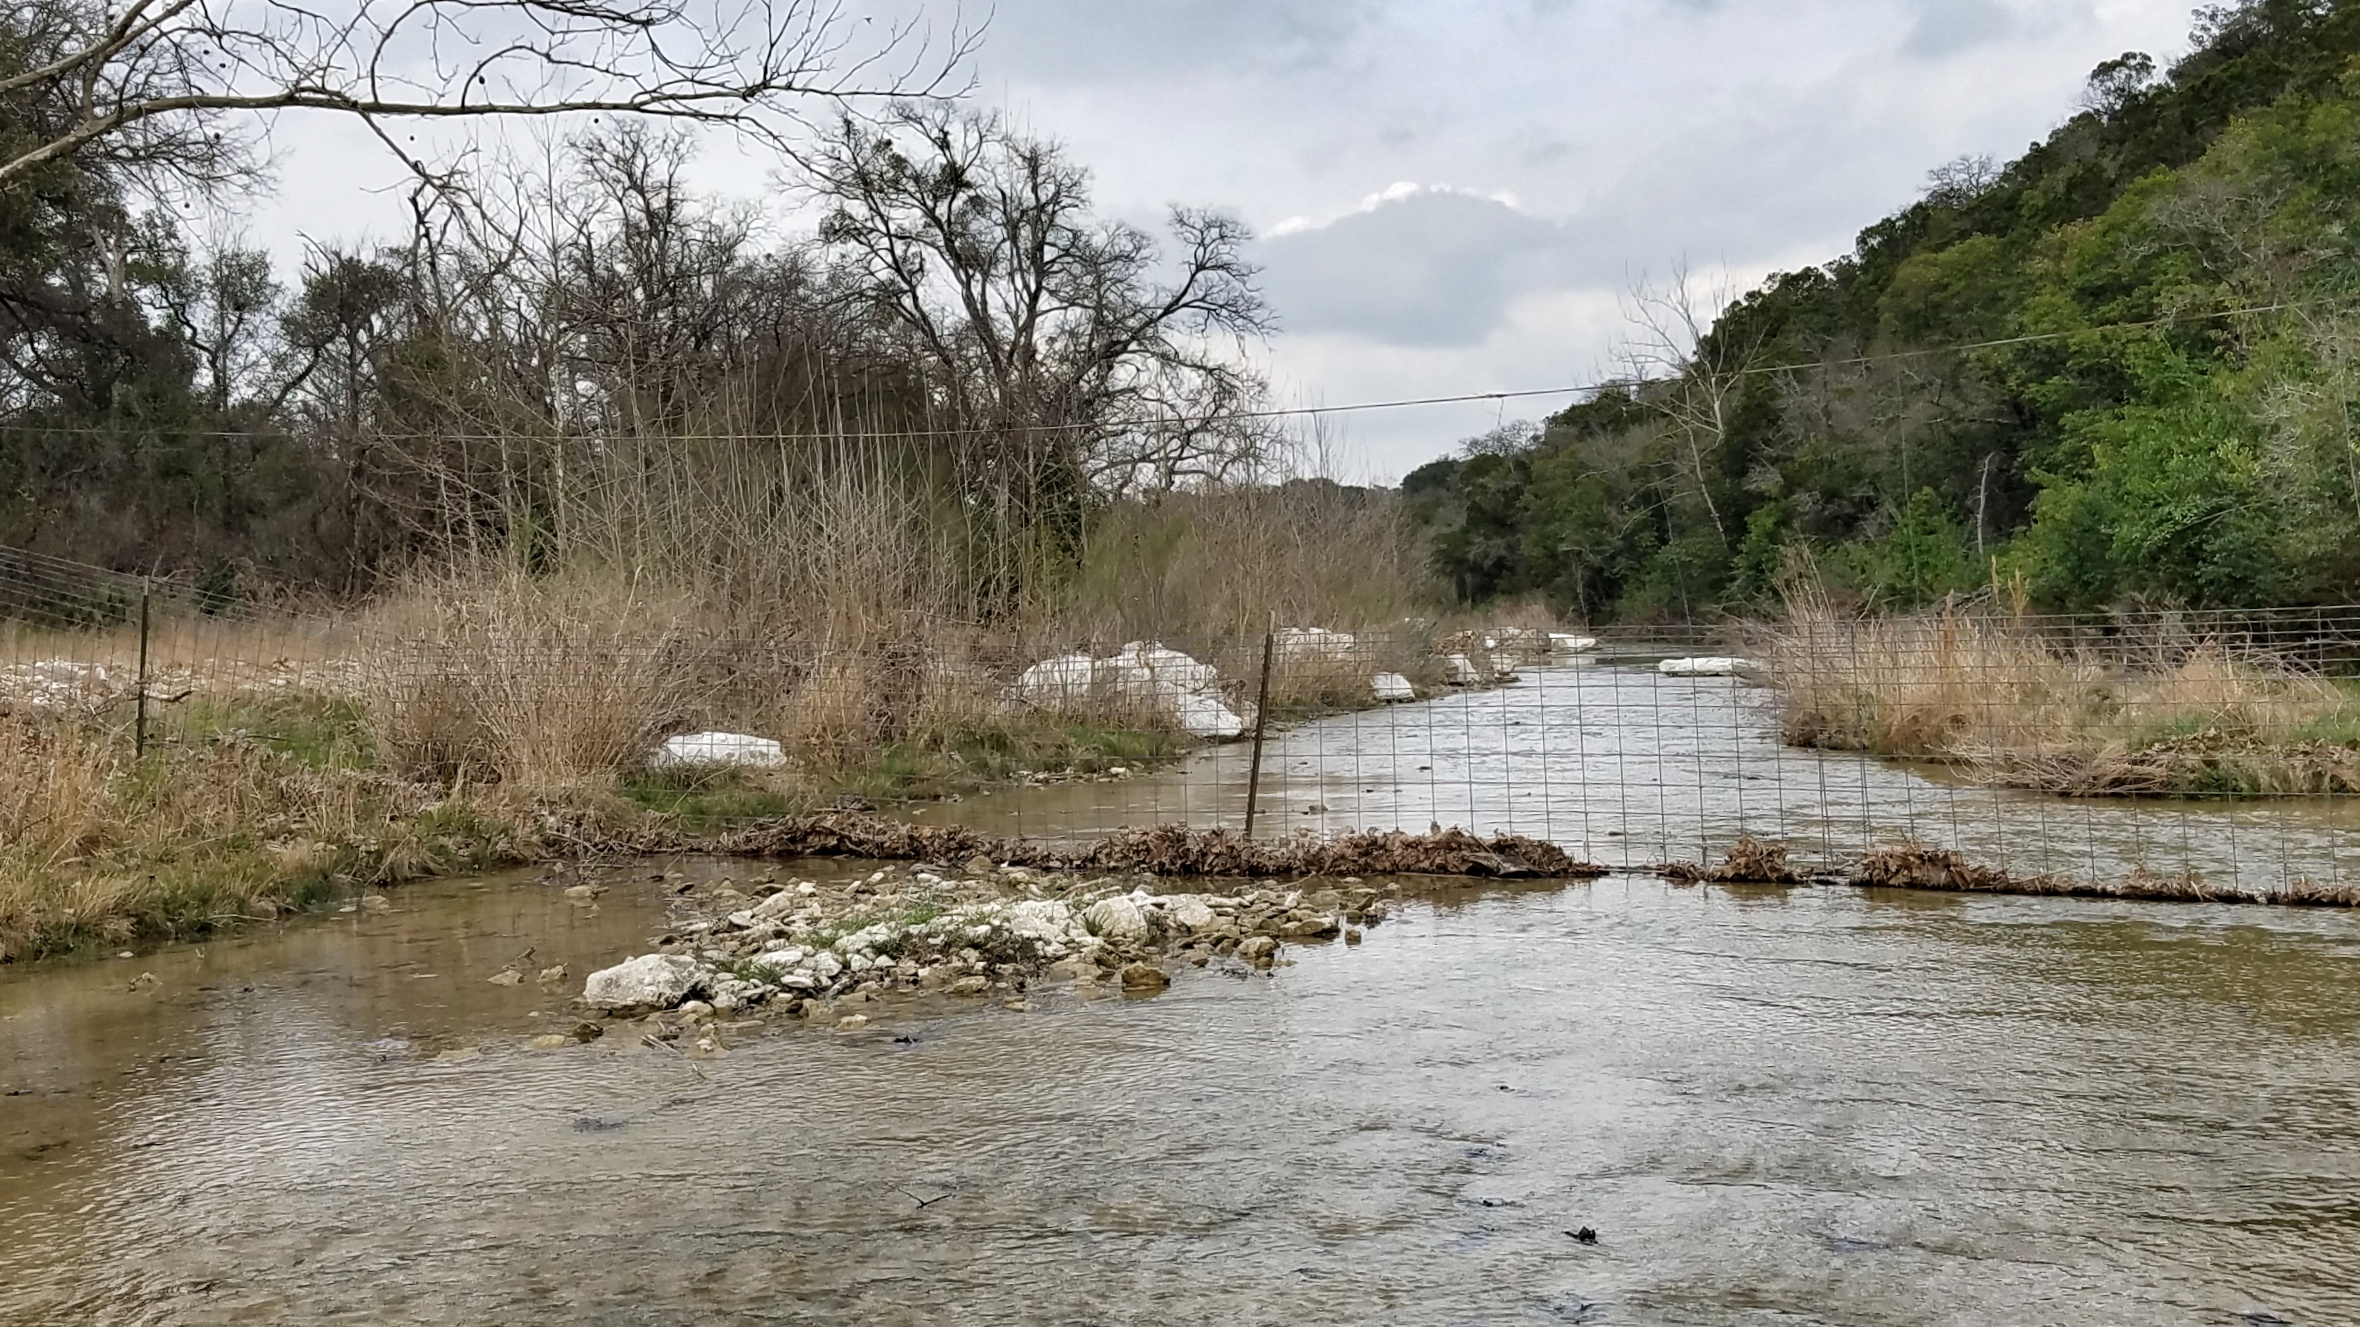 Landowners who own both sides of a stream, or hold title to the stream bed itself, may have a legitimate need to control livestock; however, that doesn't make this fence across a navigable stream legal.